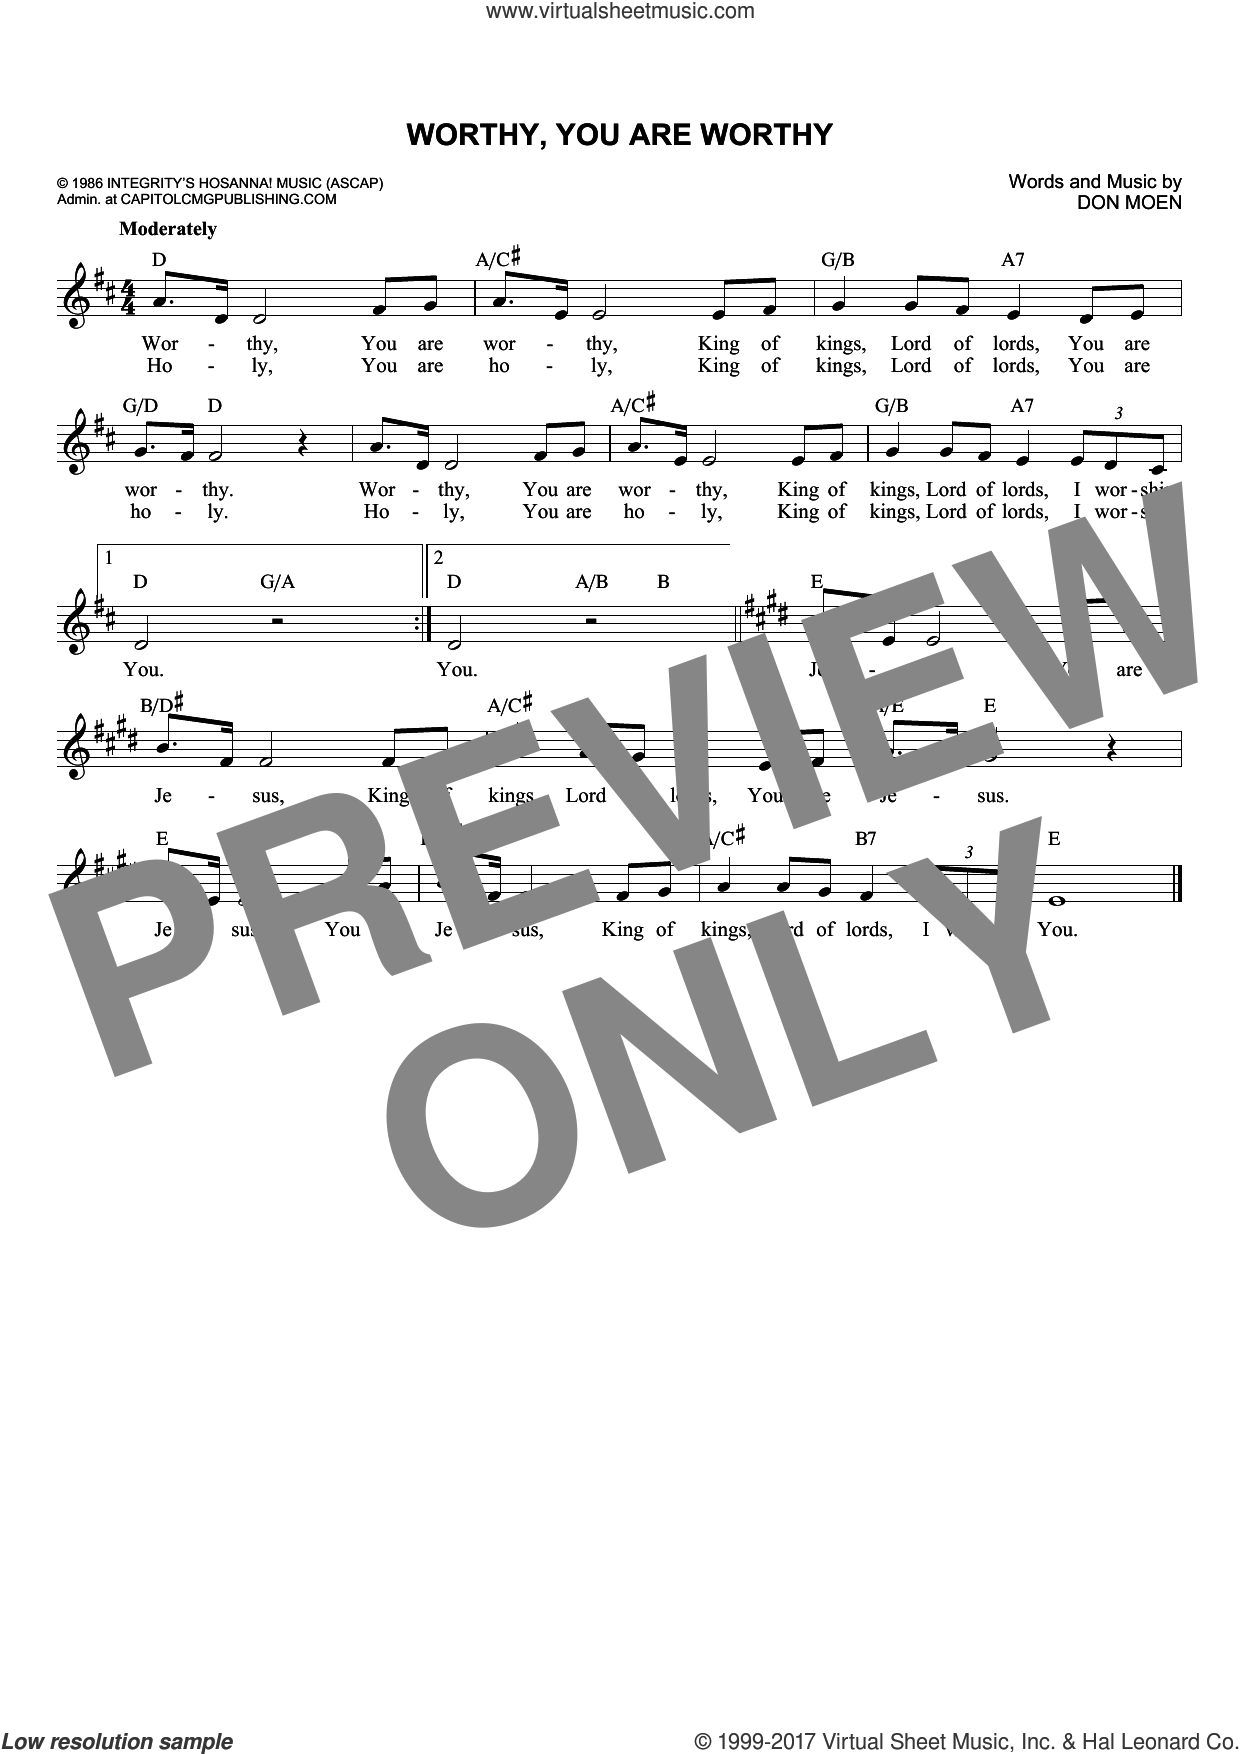 Worthy, You Are Worthy sheet music for voice and other instruments (fake book) by Don Moen. Score Image Preview.